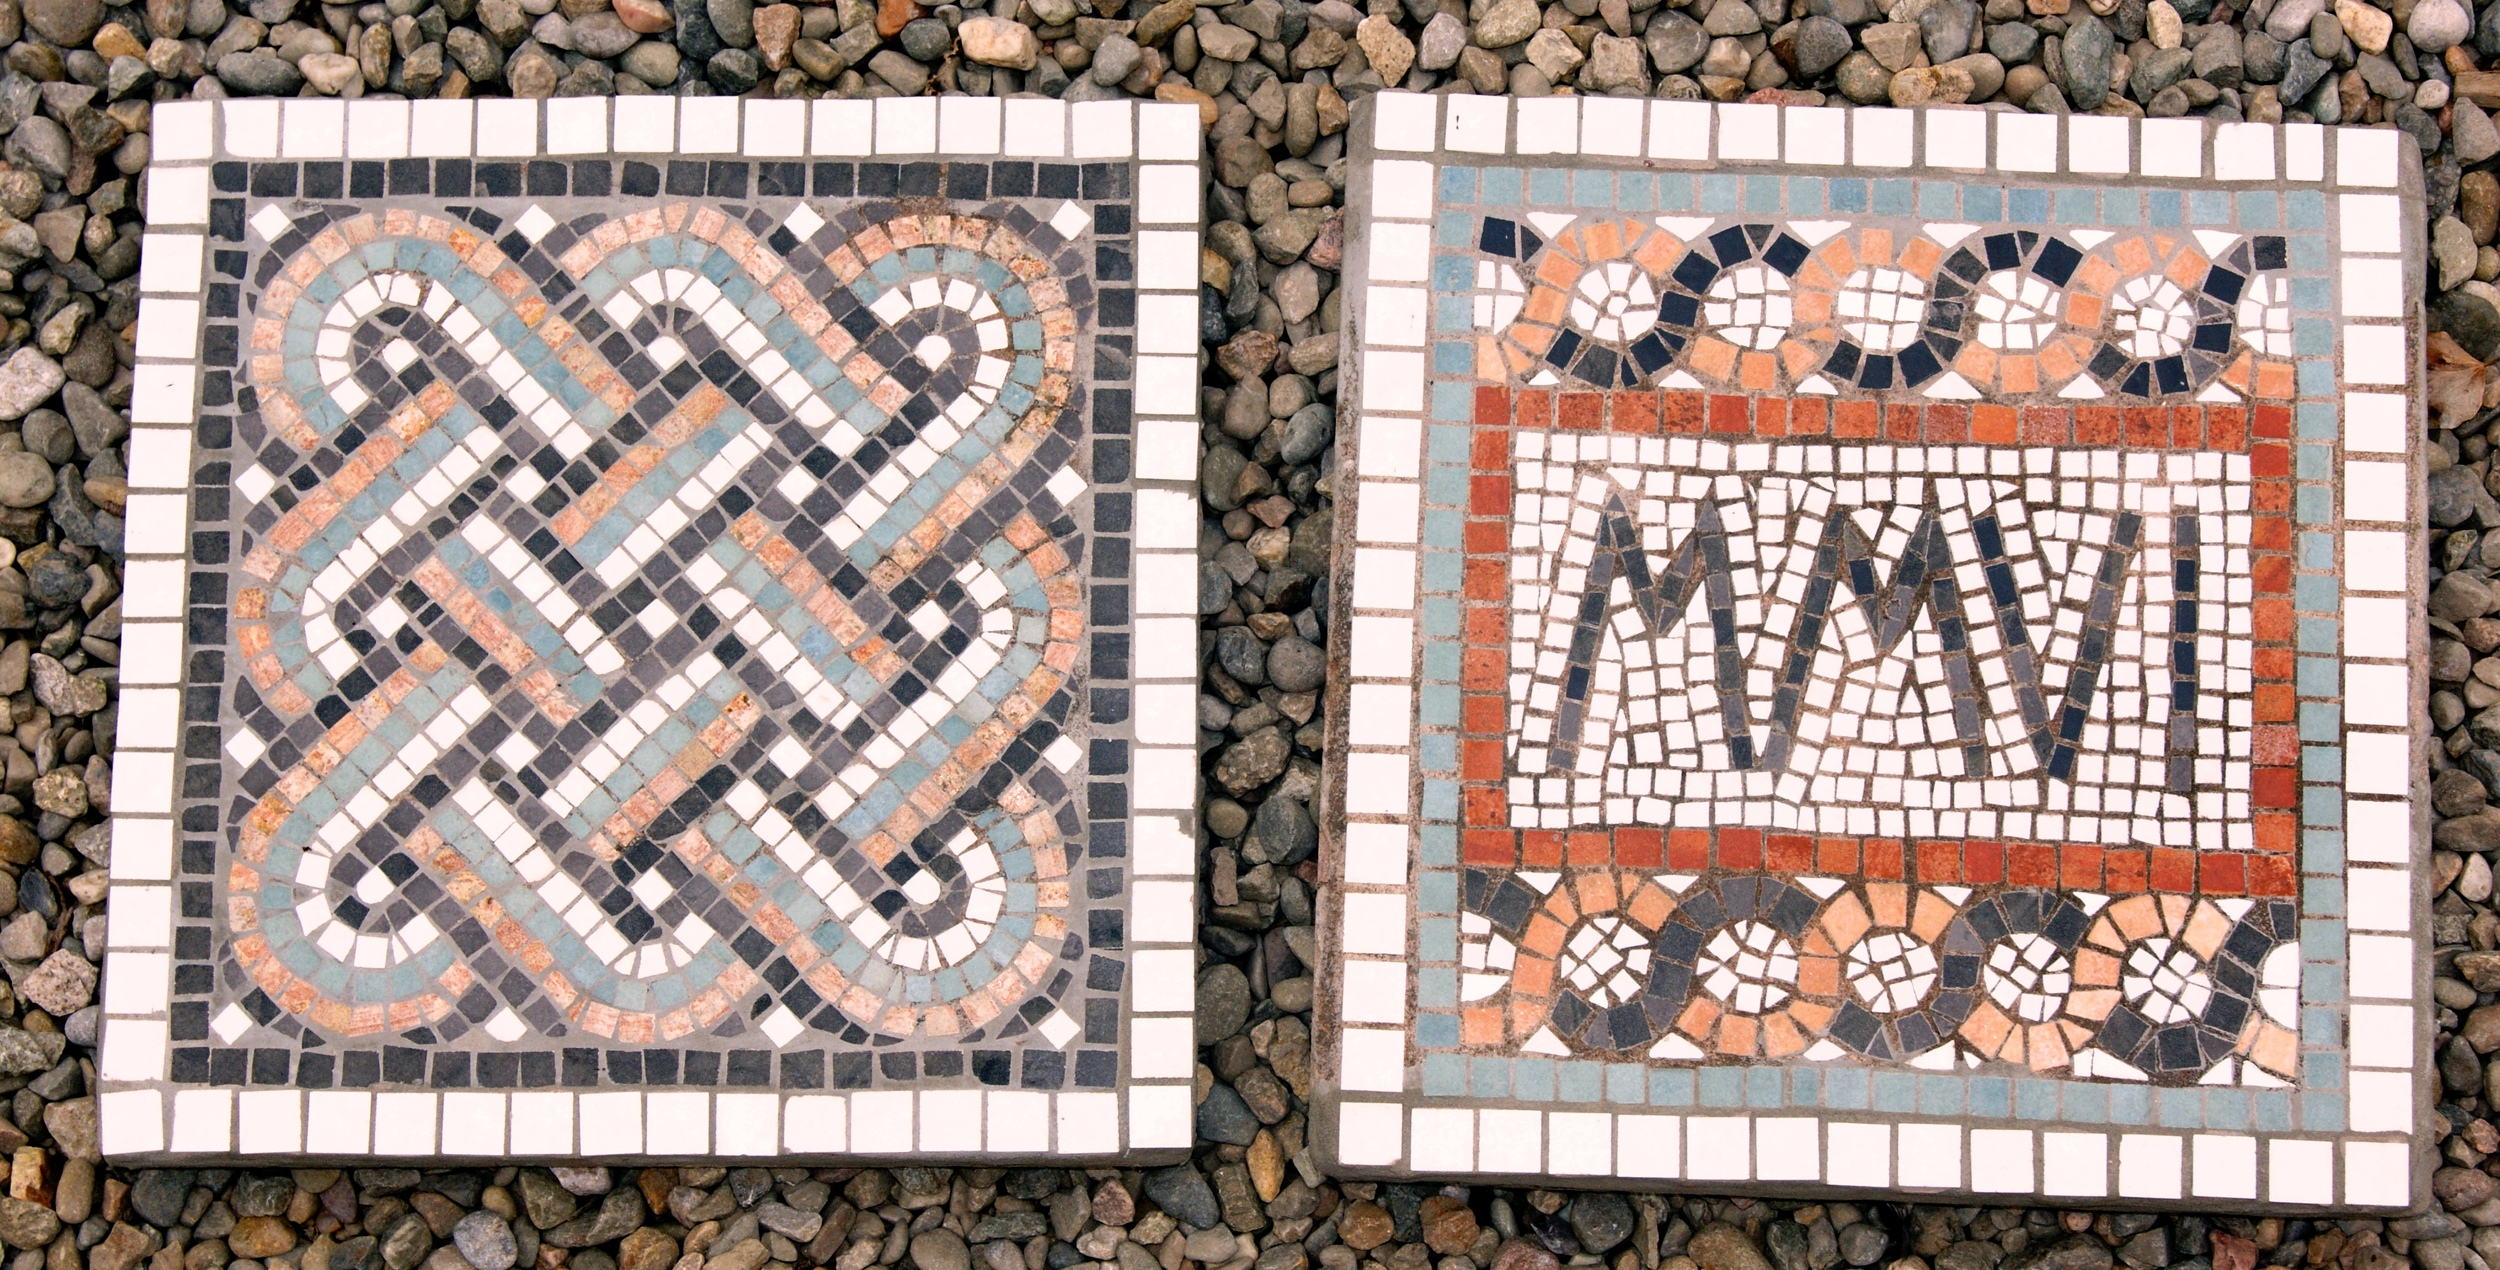 Garden slab mosaics. Design of Roman guilloche knots and Roman numerals. 20 ins. sq. Built in the indirect method, materials used are ceramic and marble, embedded into a cement base.